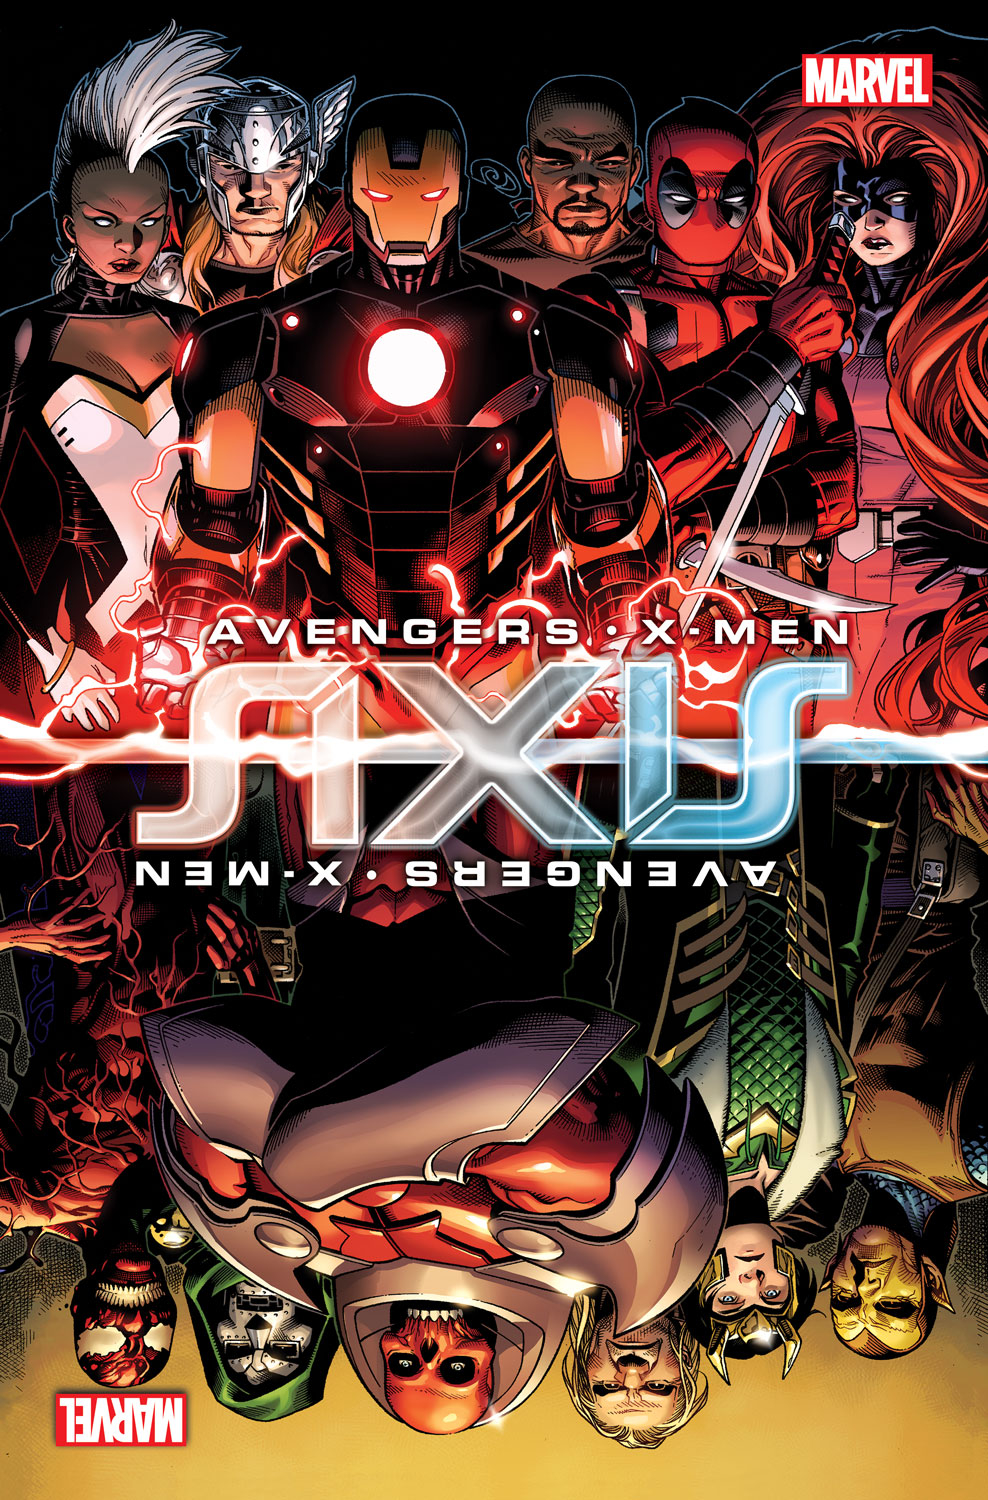 AVENGERS AND X-MEN AXIS #5